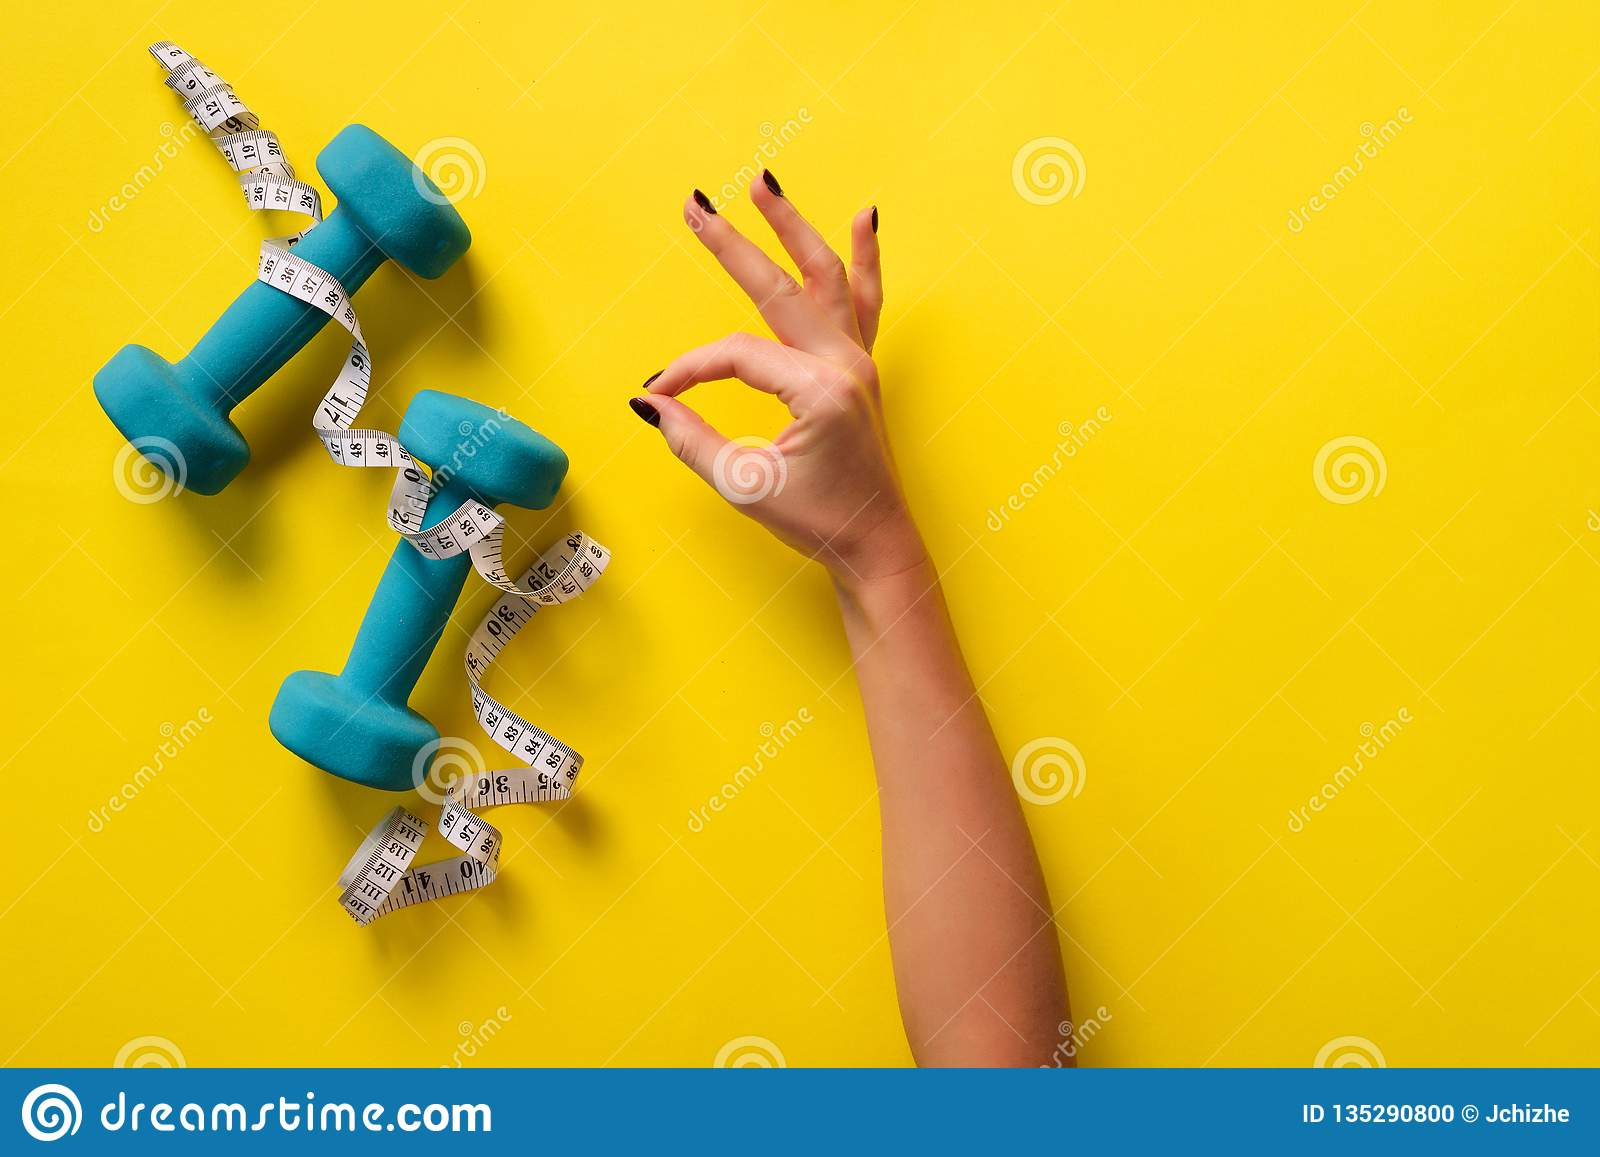 Female hand showing ok, like sign, measuring tape, dumbbells over yellow background. Top view, flat lay. Weight lost, sport,